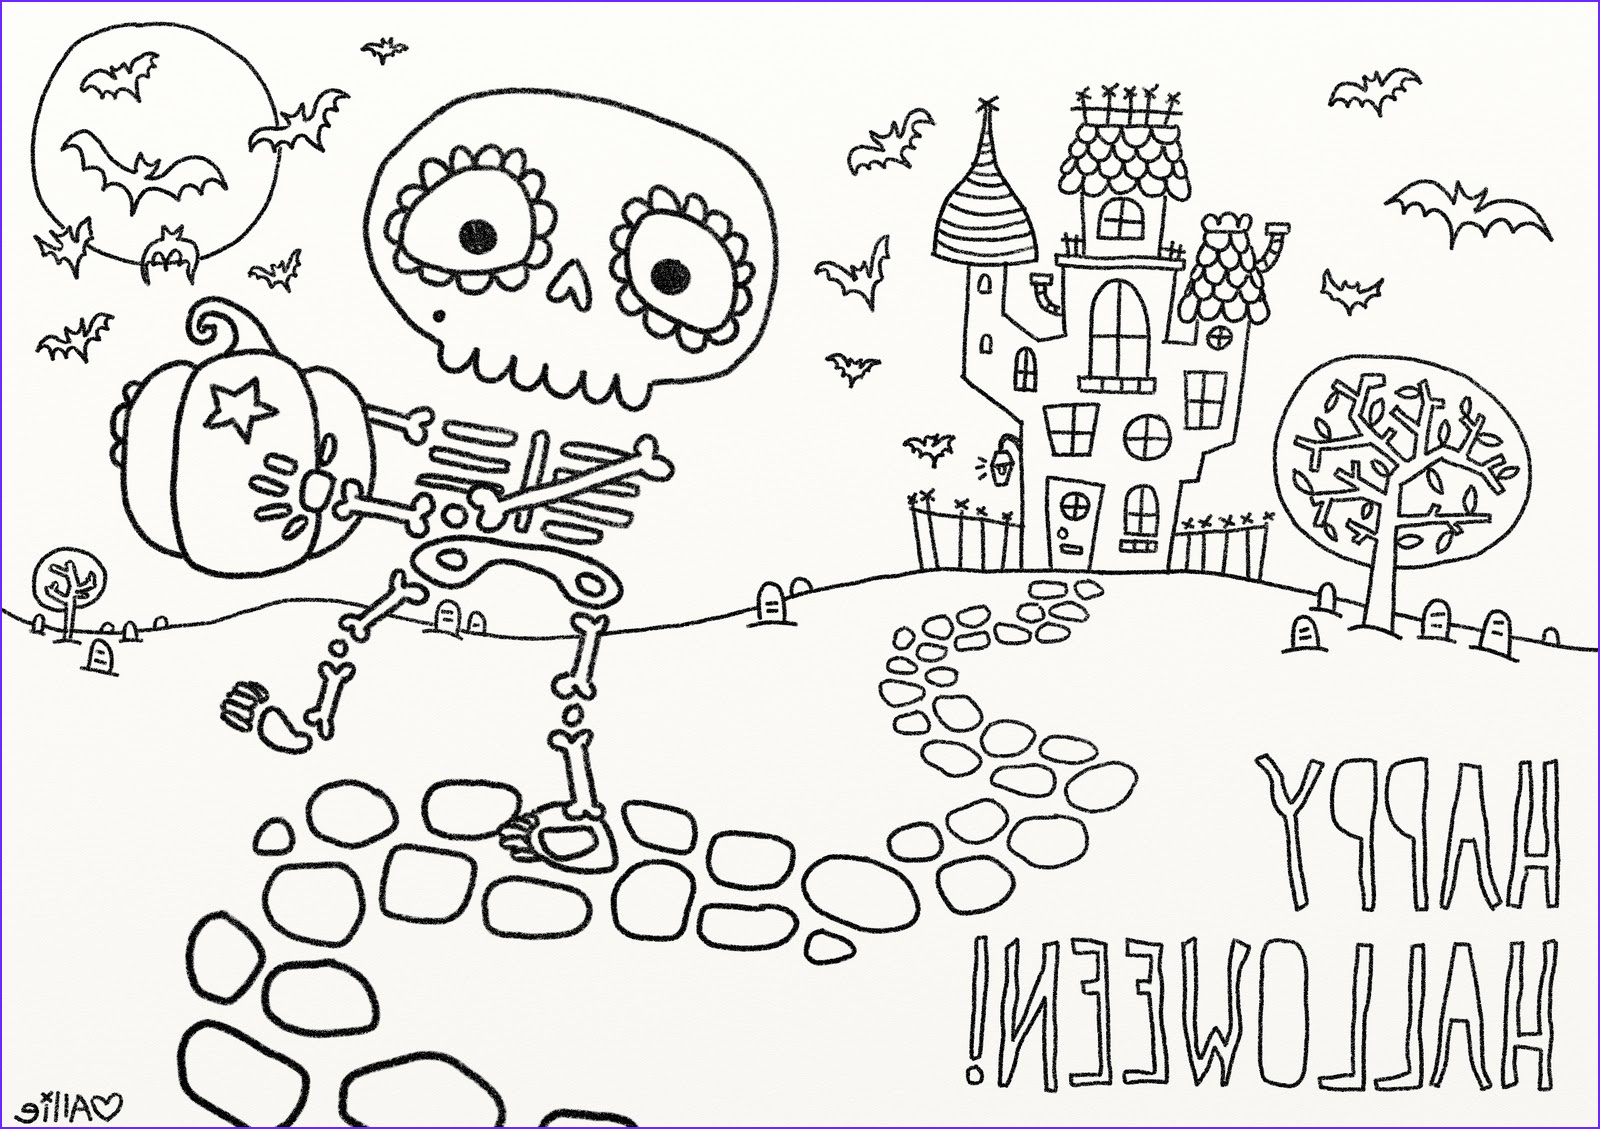 Free Printable Halloween Coloring Pages for Kids New Photos 9 Fun Free Printable Halloween Coloring Pages